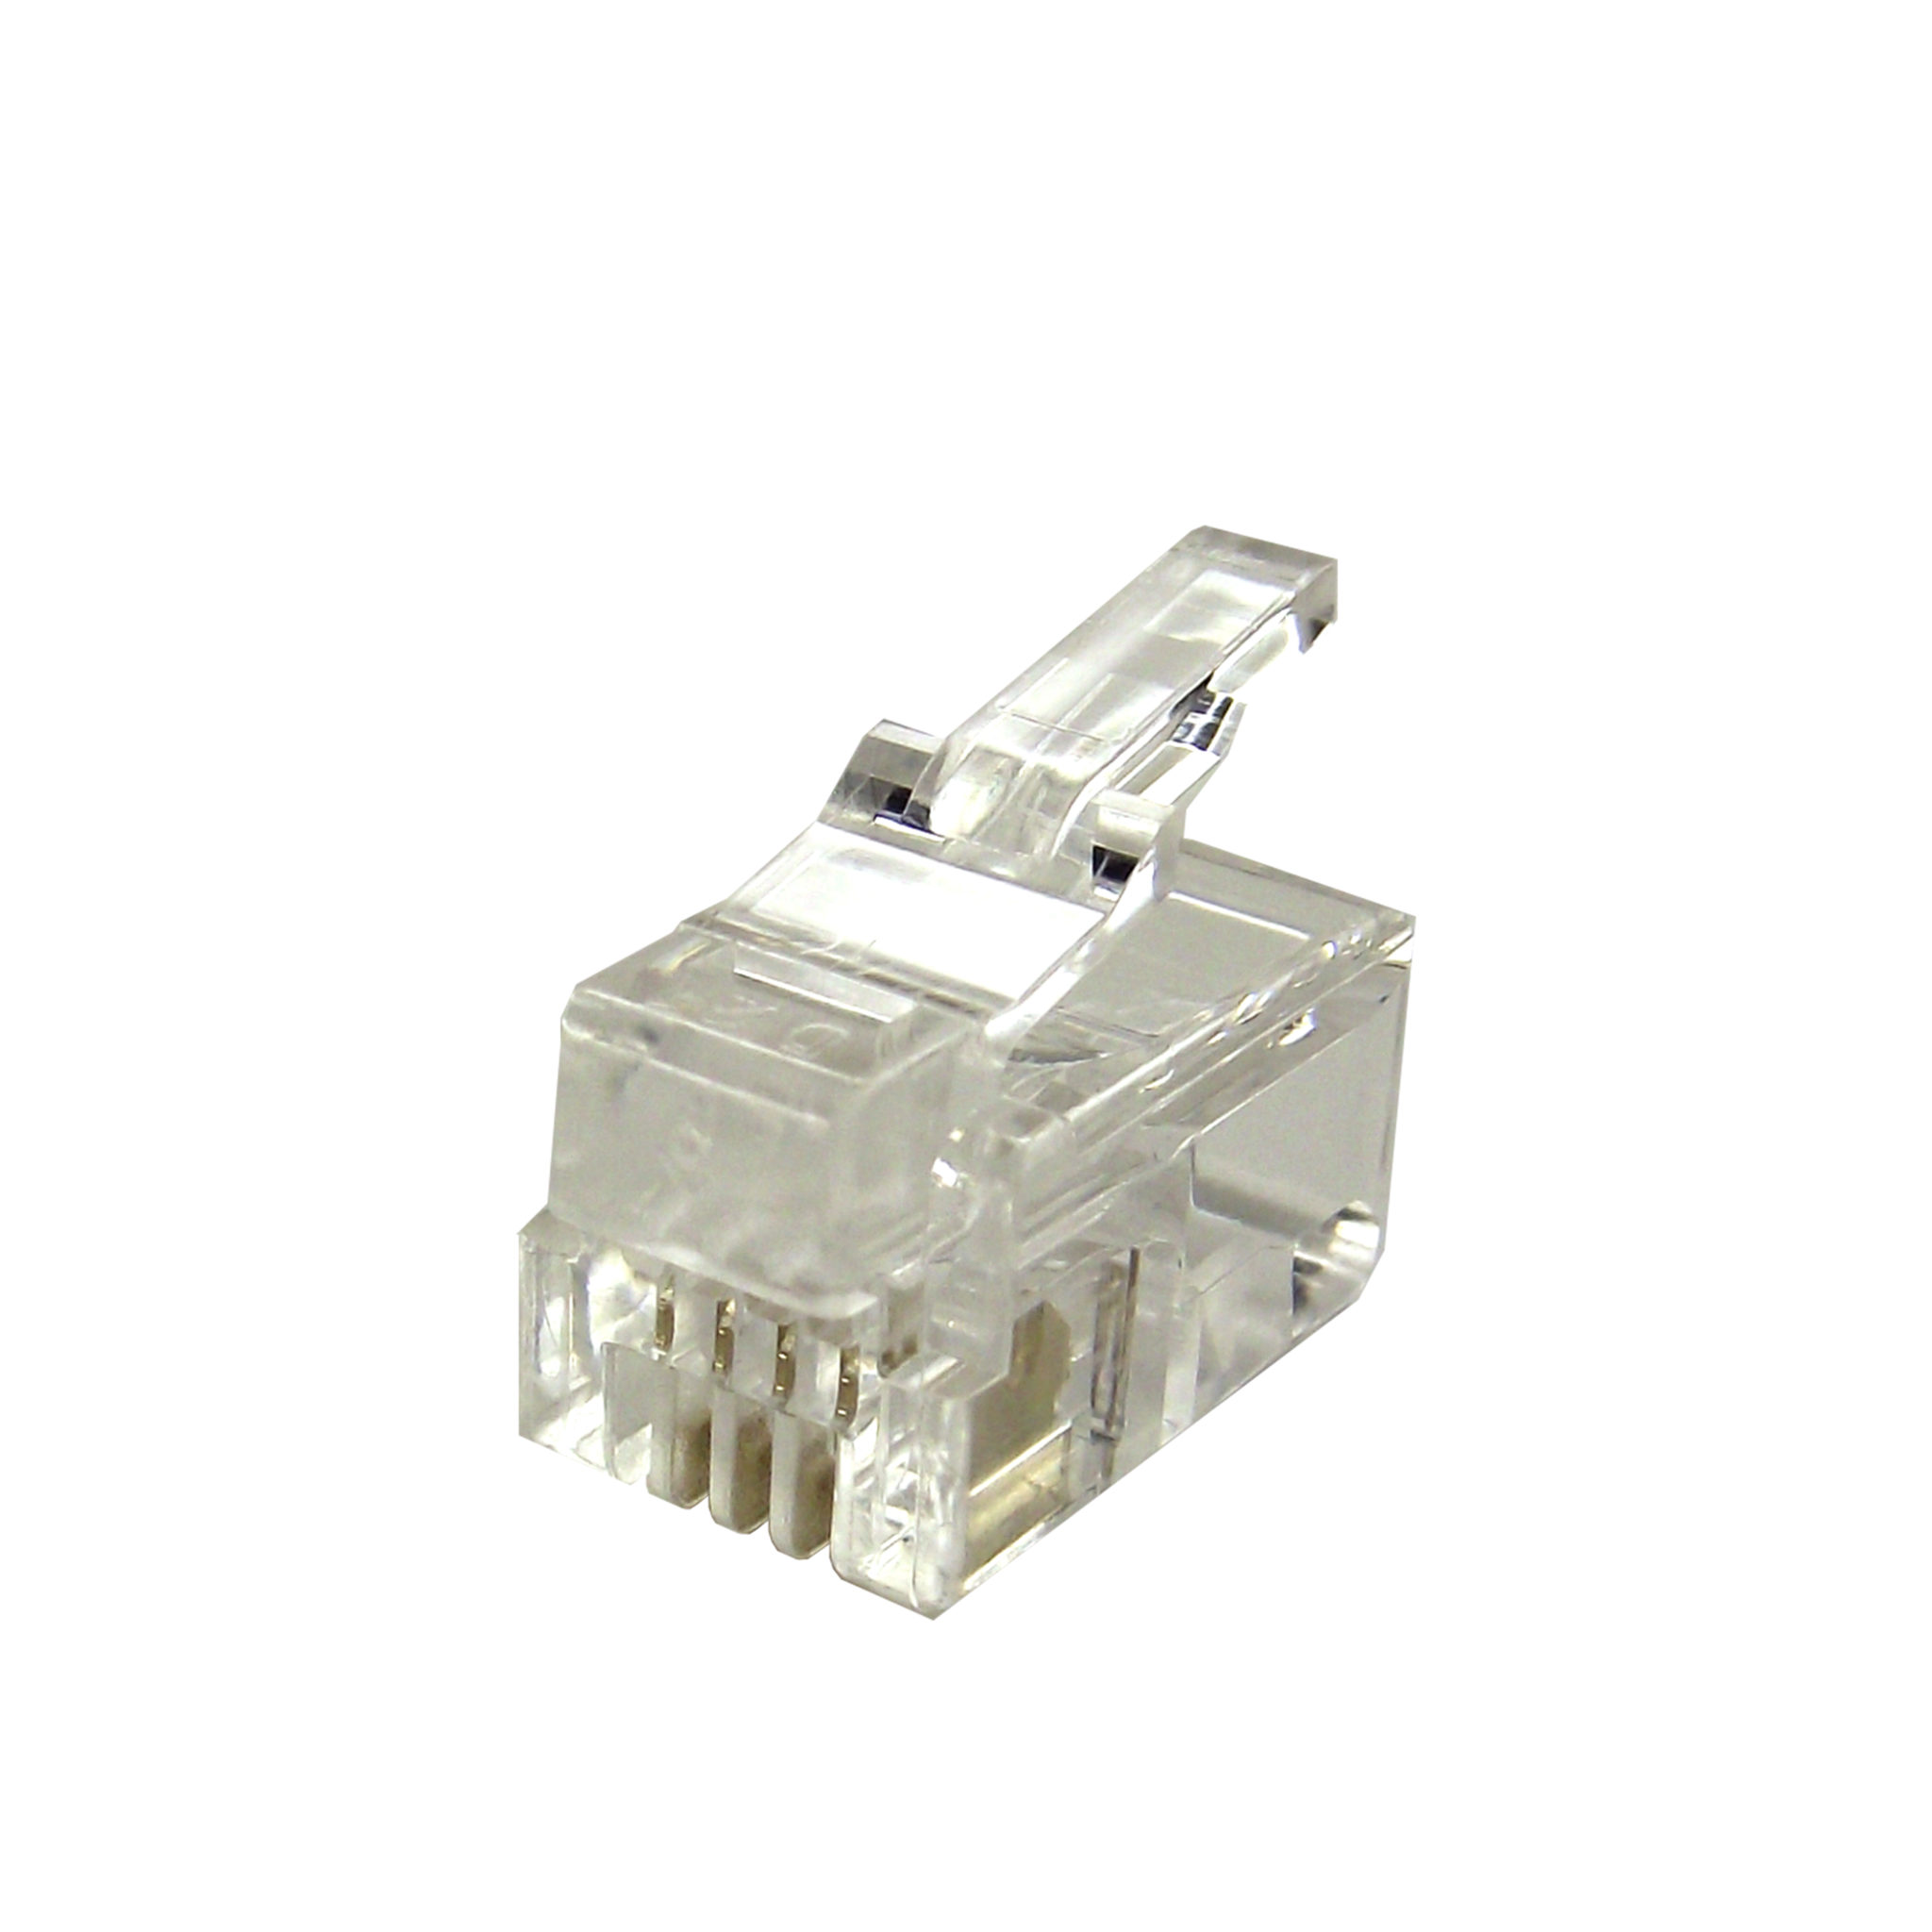 rj22 connector wiring mod plug  rj22 4p4c  for flat cable  gold plated contacts     shaxon  mod plug  rj22 4p4c  for flat cable